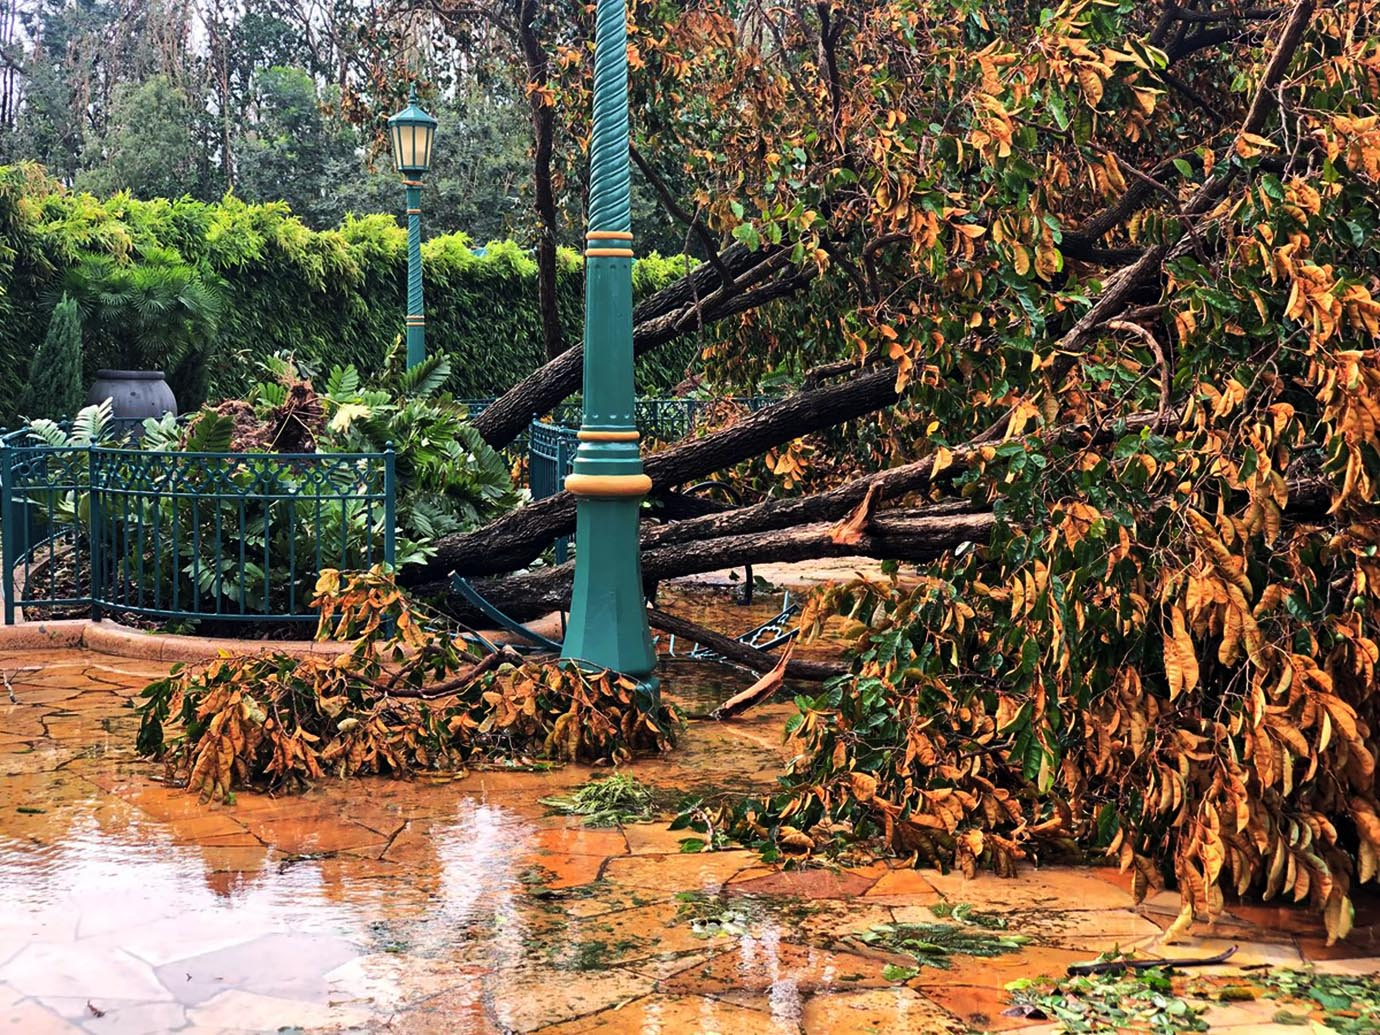 hong-kong-disneyland-damage3